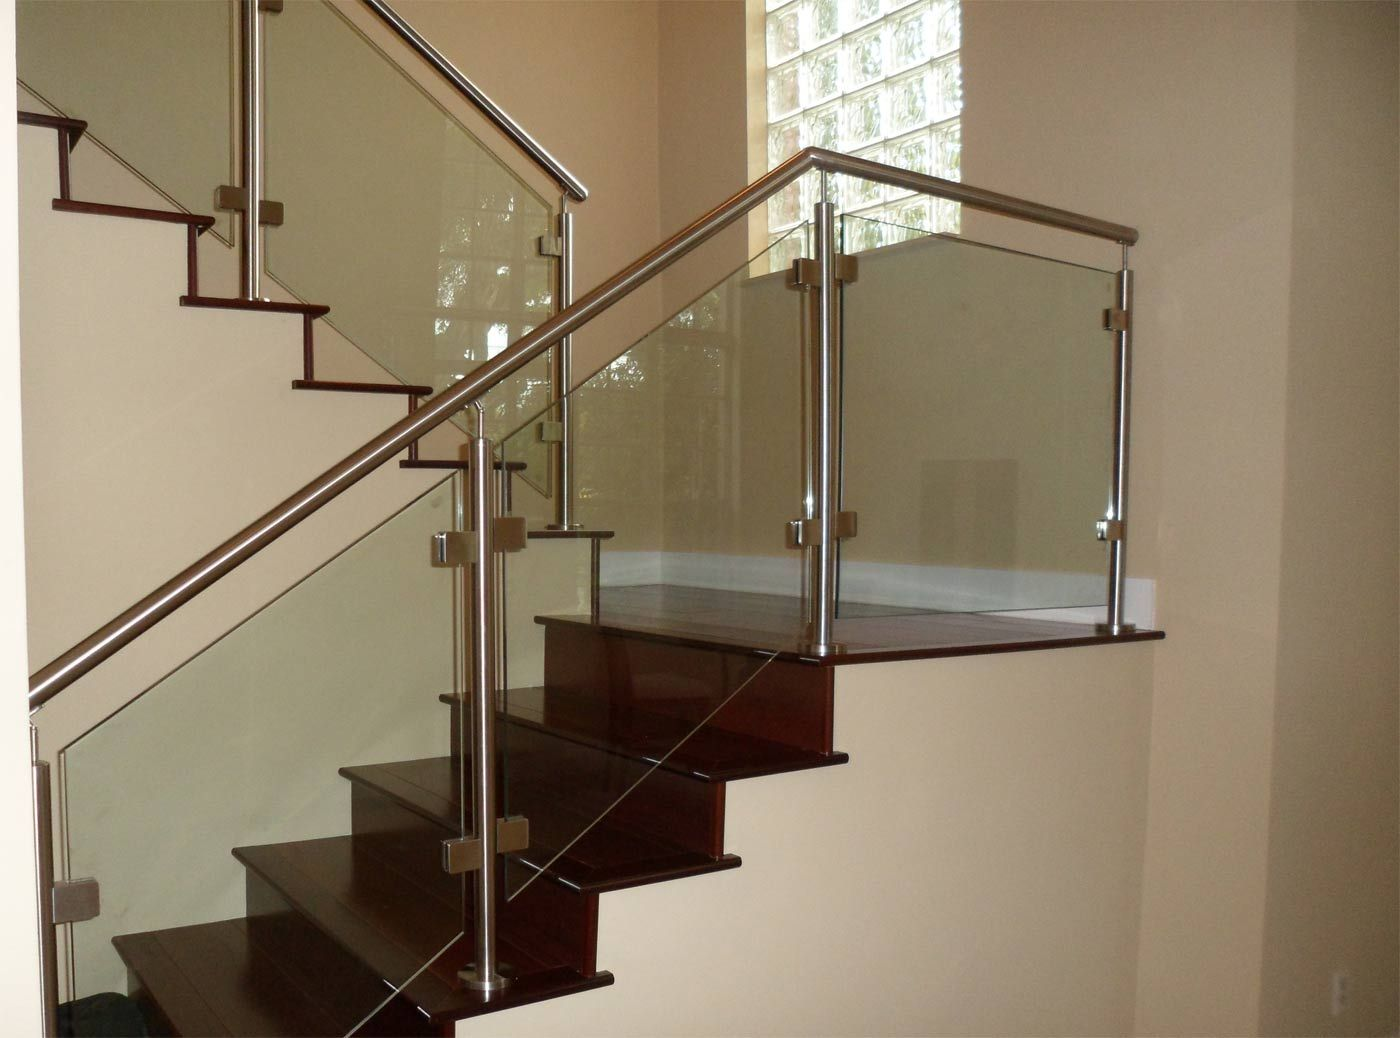 Cute Miami Stairs Glass Railings Stainless Railings Wood Railings | Staircase Steel Railing Designs With Glass | Glass Panel Wooden Handrail | Modern Style | Stair Glass Void | Curved | Metal